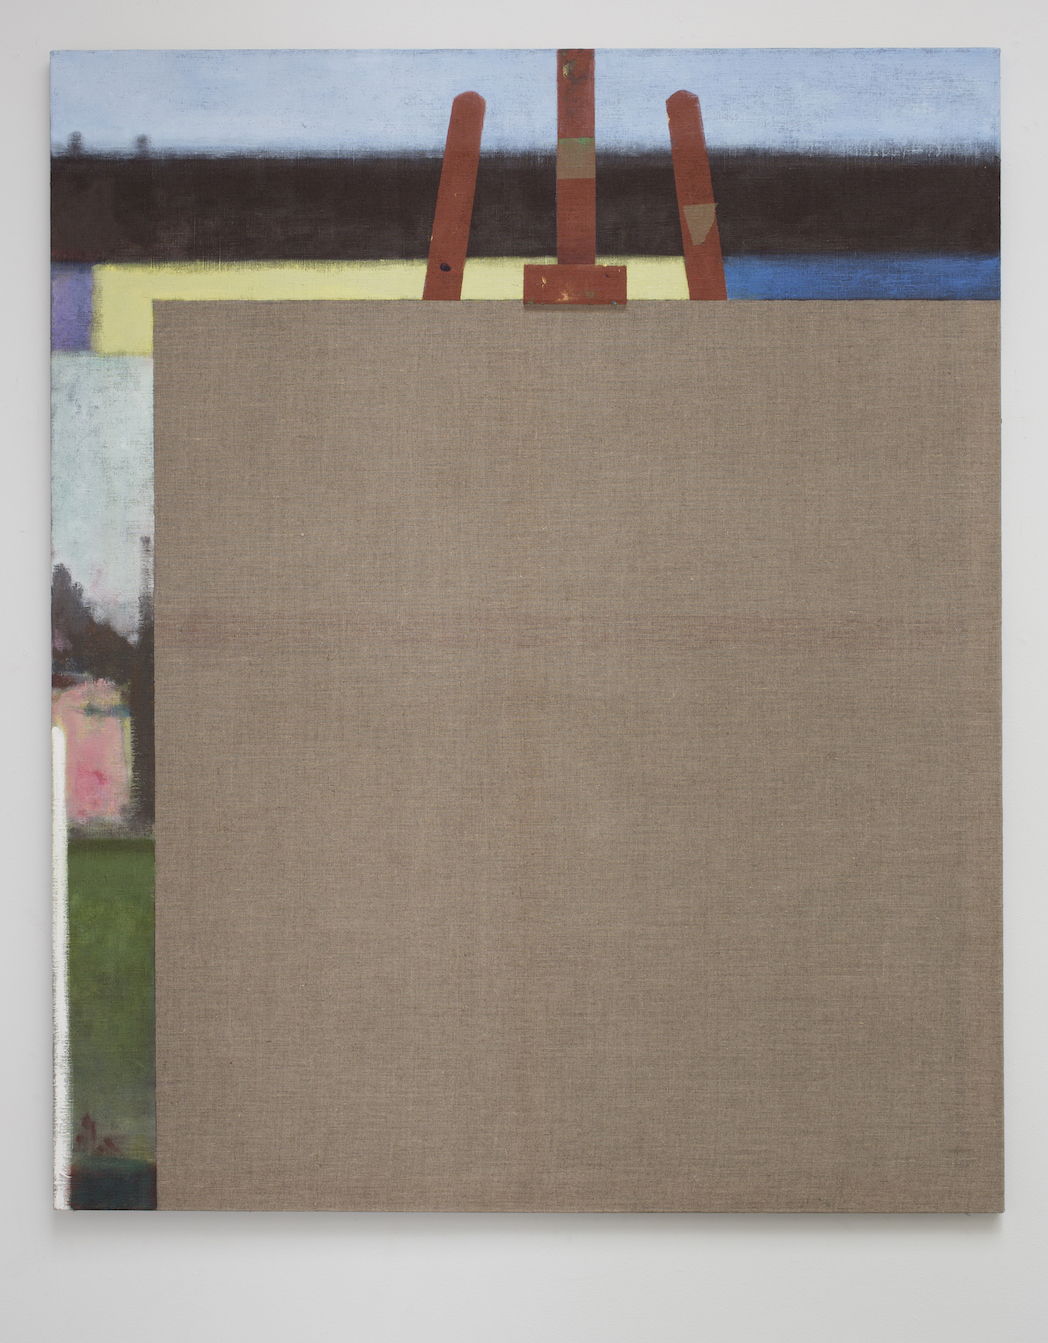 Likely Posture For Plein Air.  Acrylic on linen, 116x142 cm, 2014.